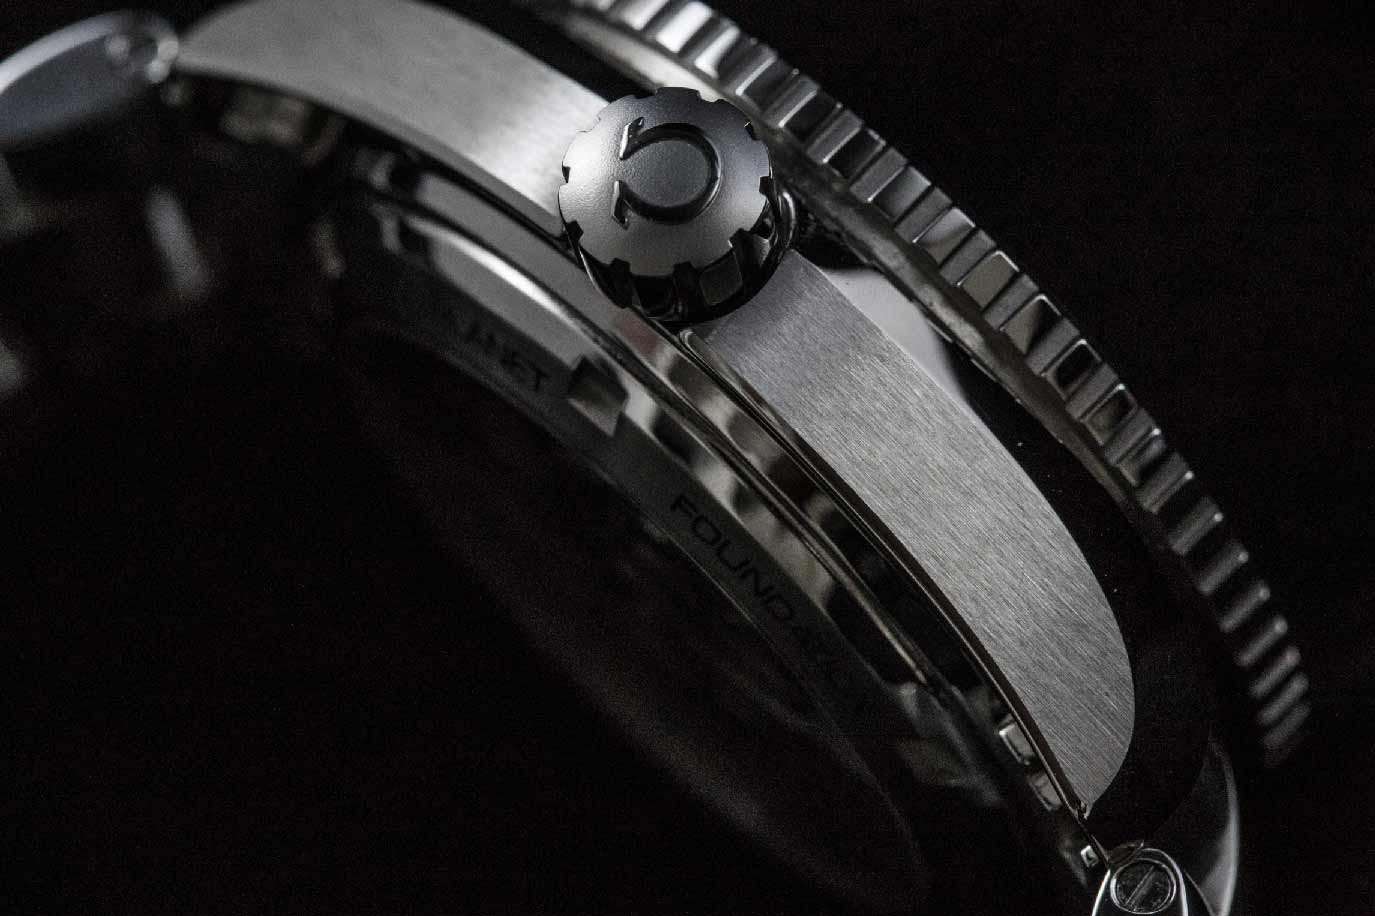 Omega's case-finishing is superb. The transitions between surfaces are sharp and clean, the brushing is fine and even, and the contrasting polished and sandblasted finish on the crown is an extremely nice touch.